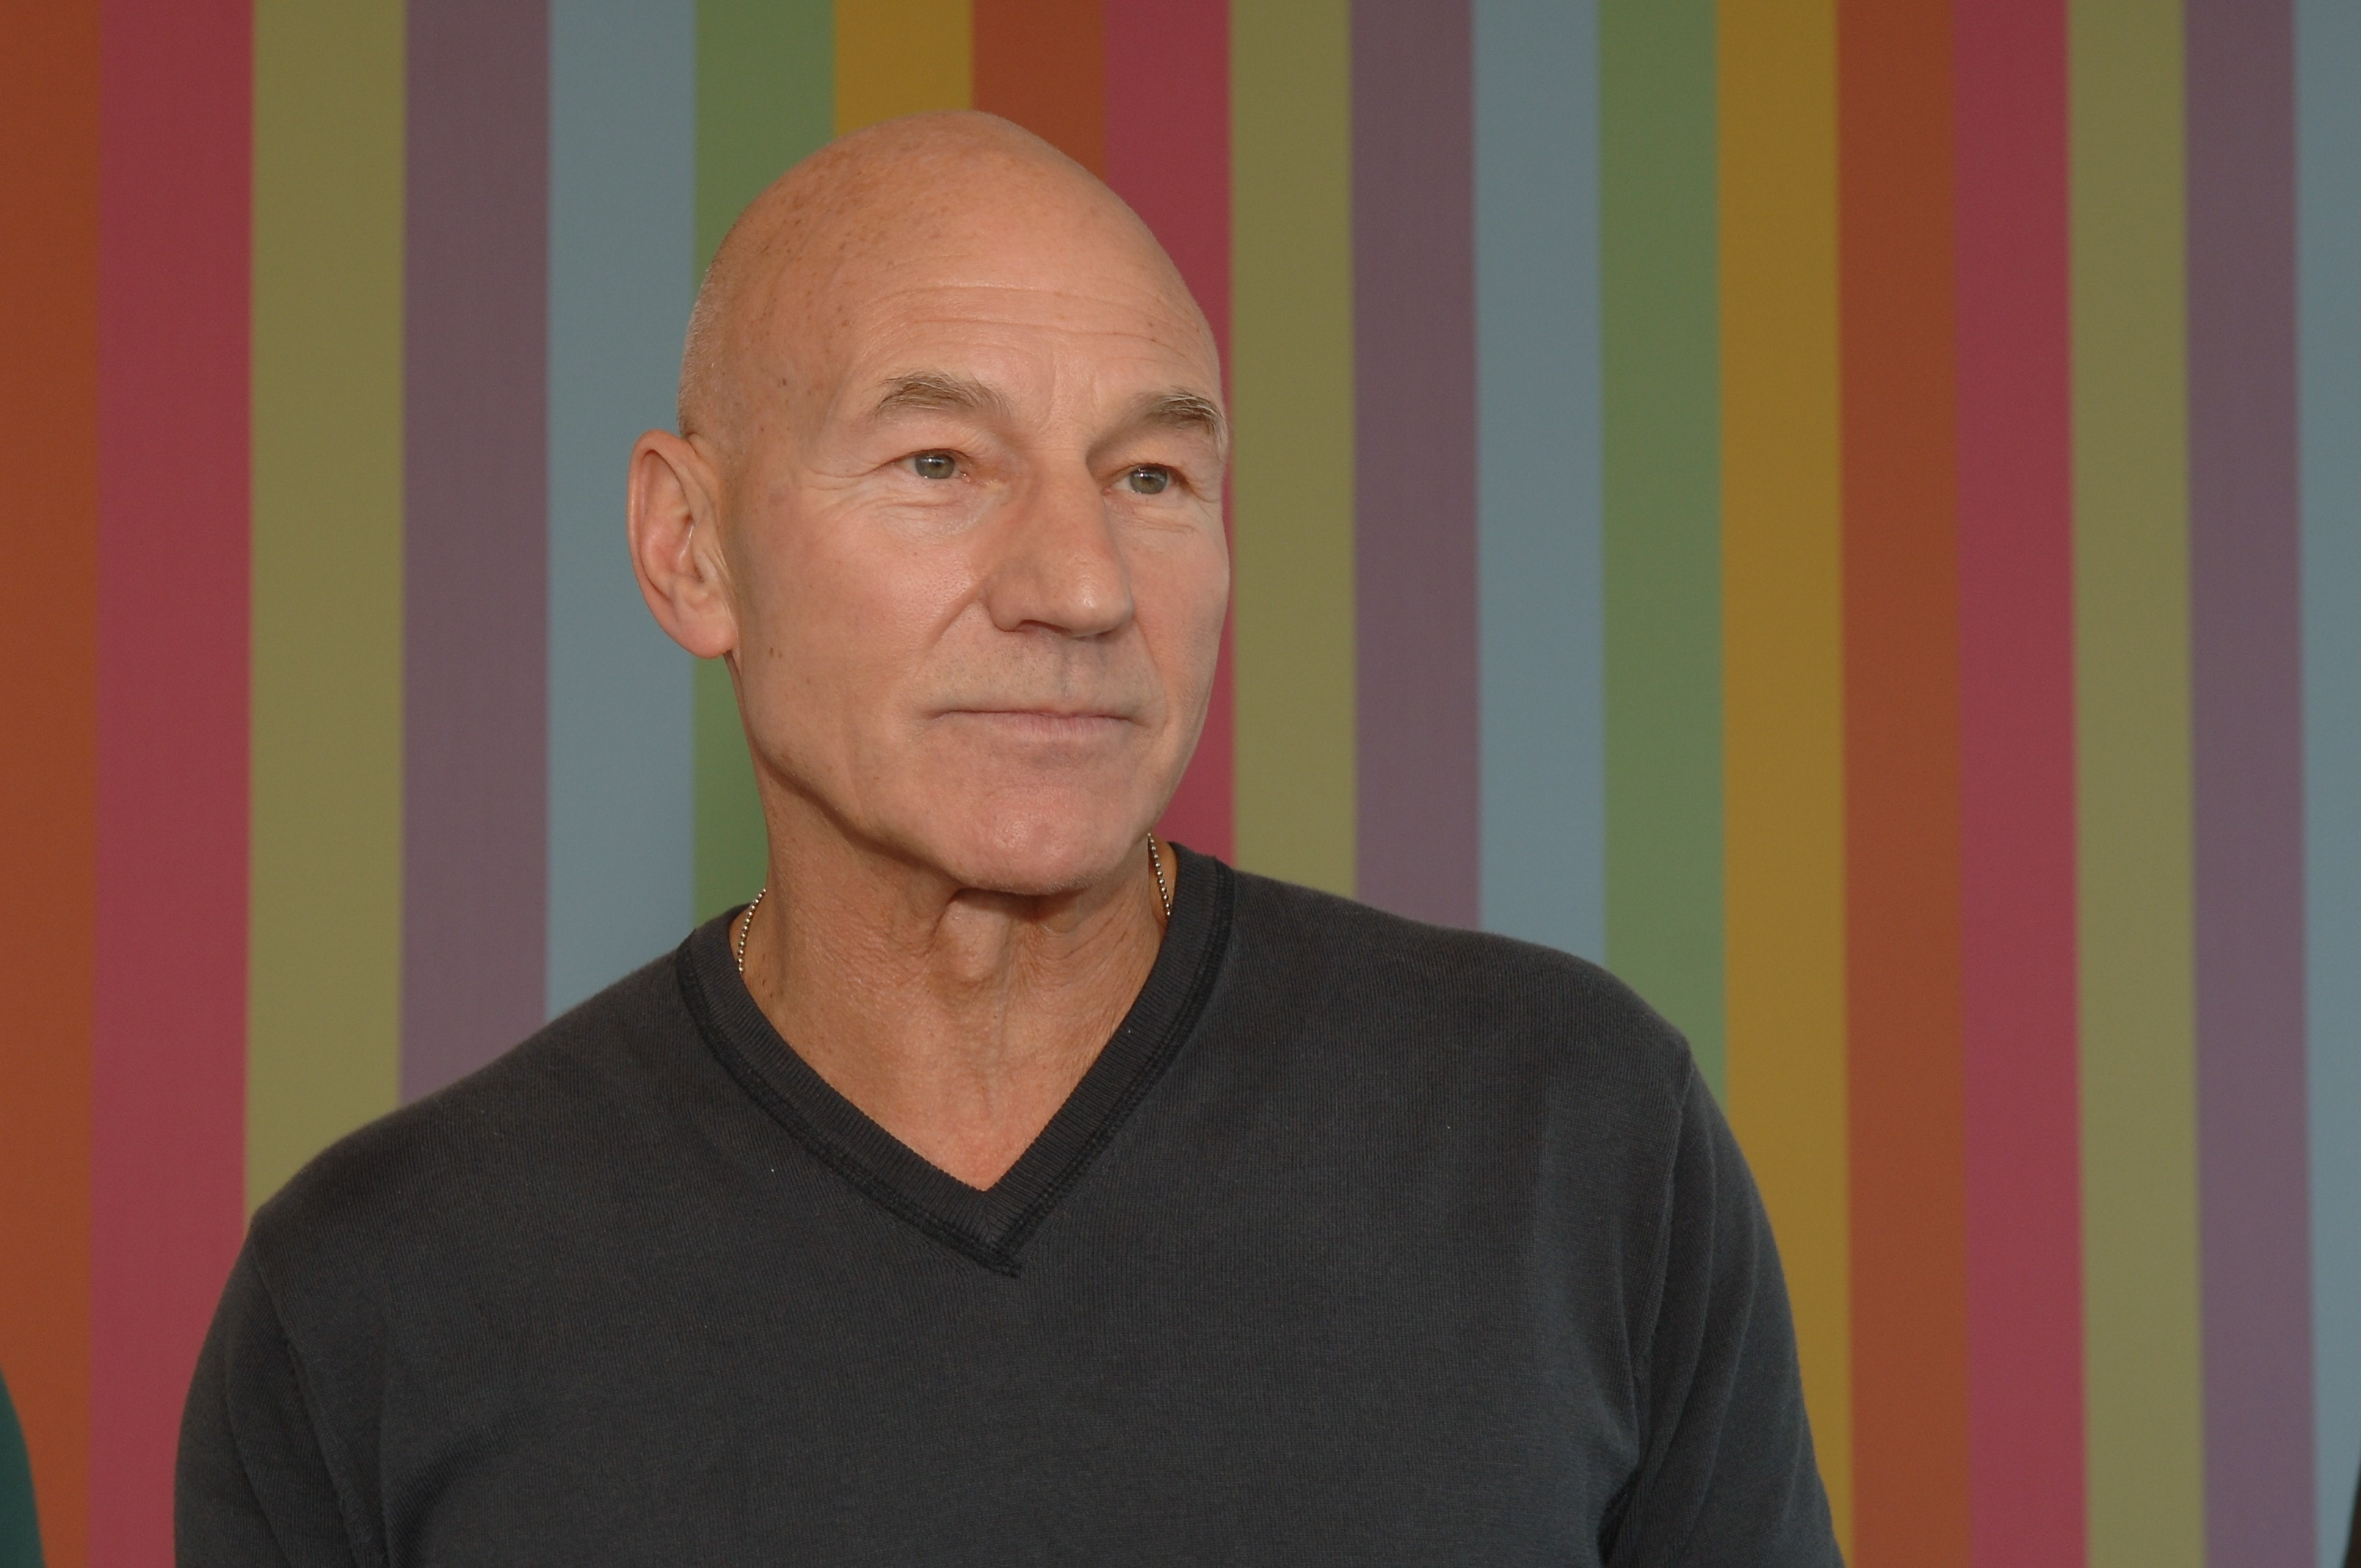 Patrick Stewart Backgrounds